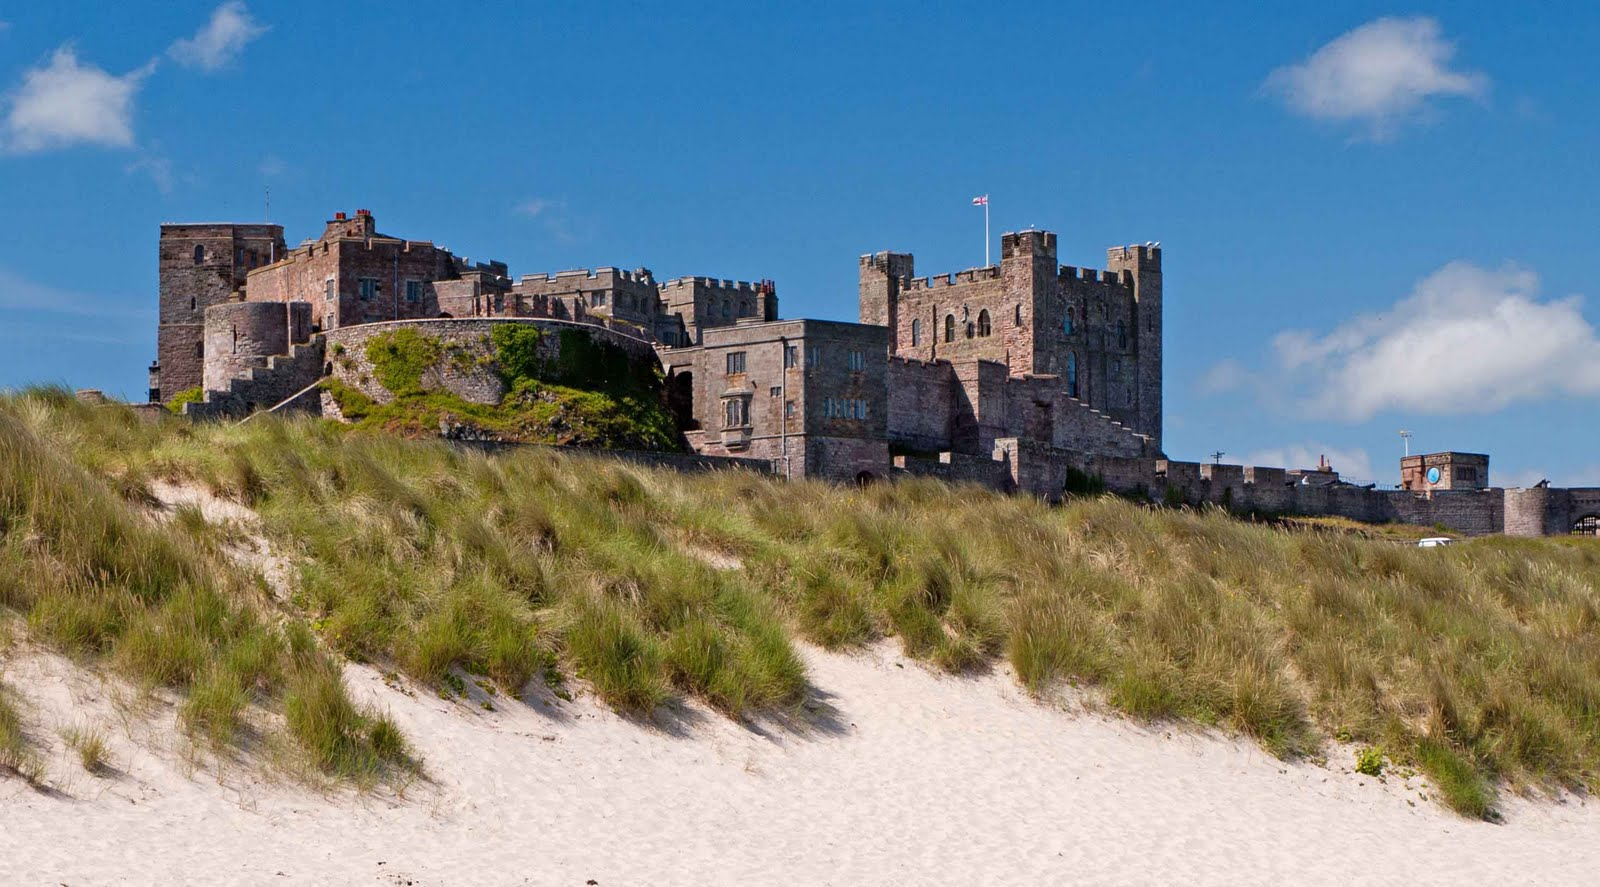 bamburgh castle - photo #17